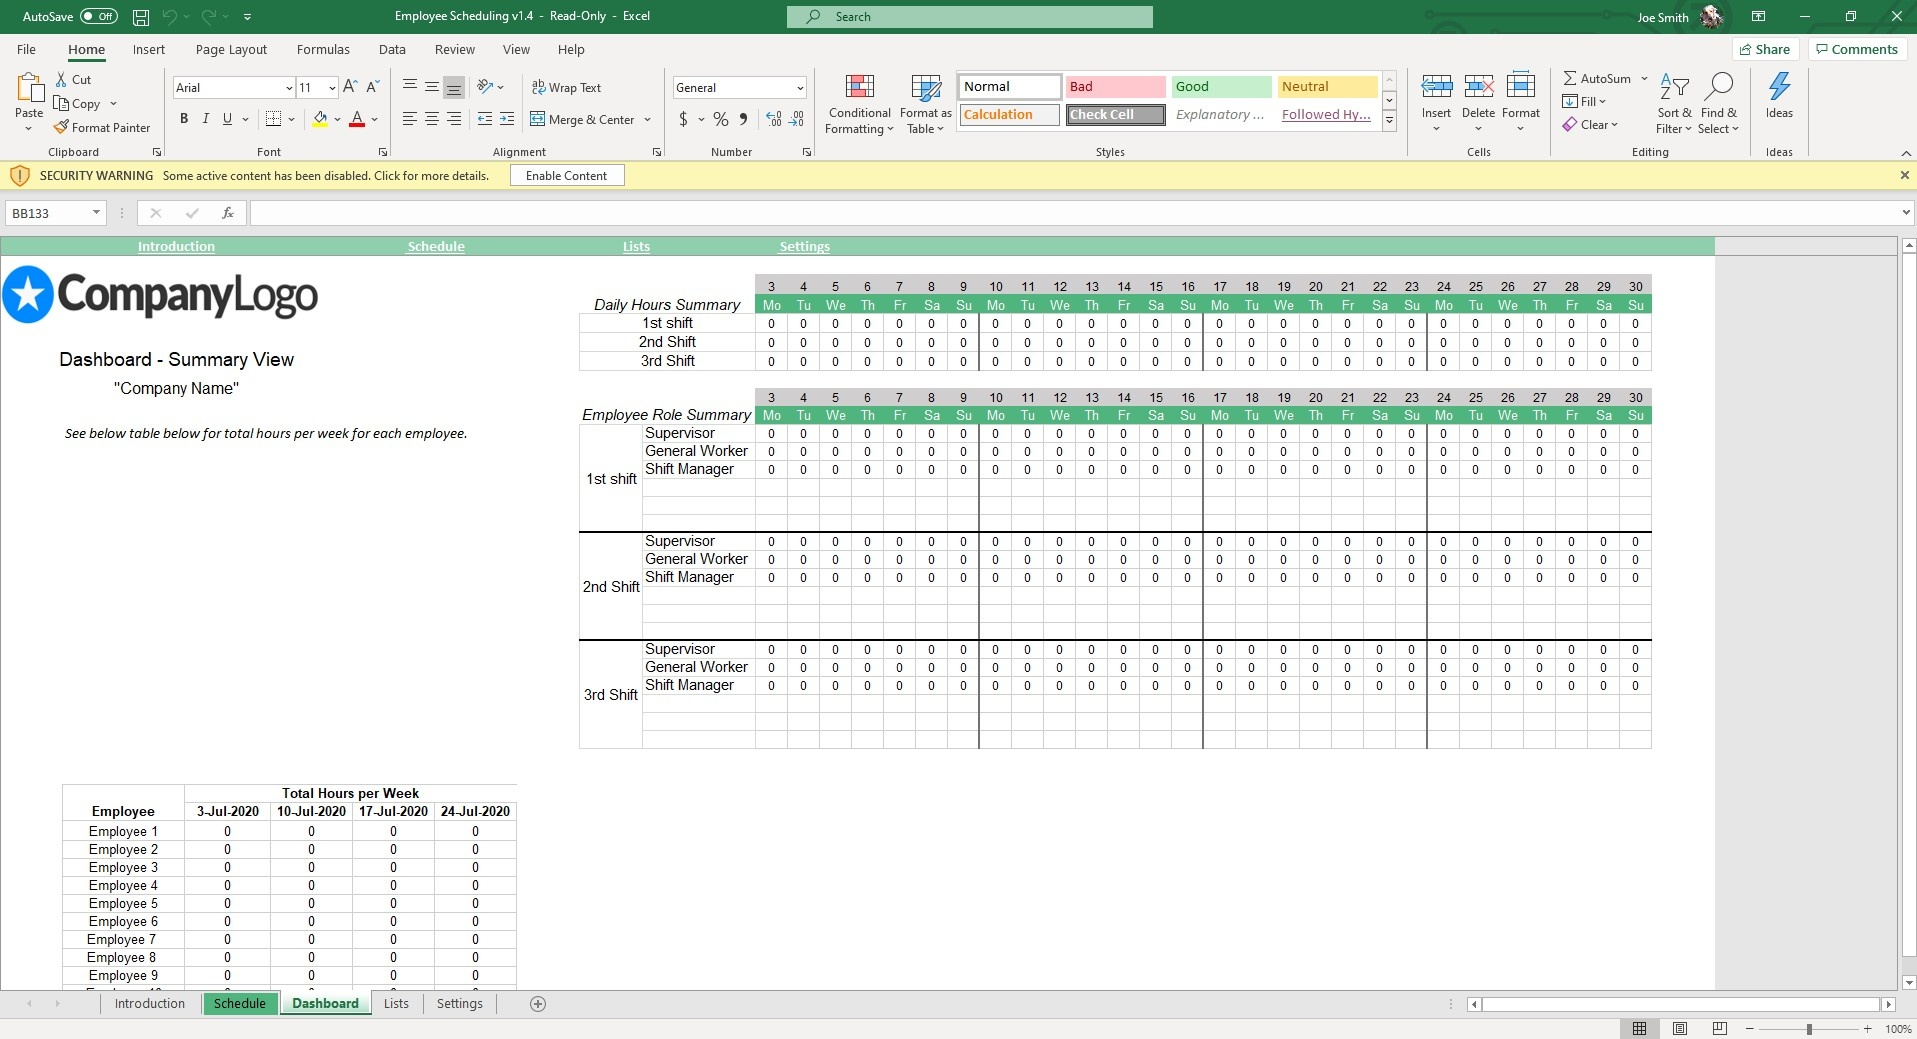 The Dashboard sheet gives you an overview of shift coverage and hours per week by employee.